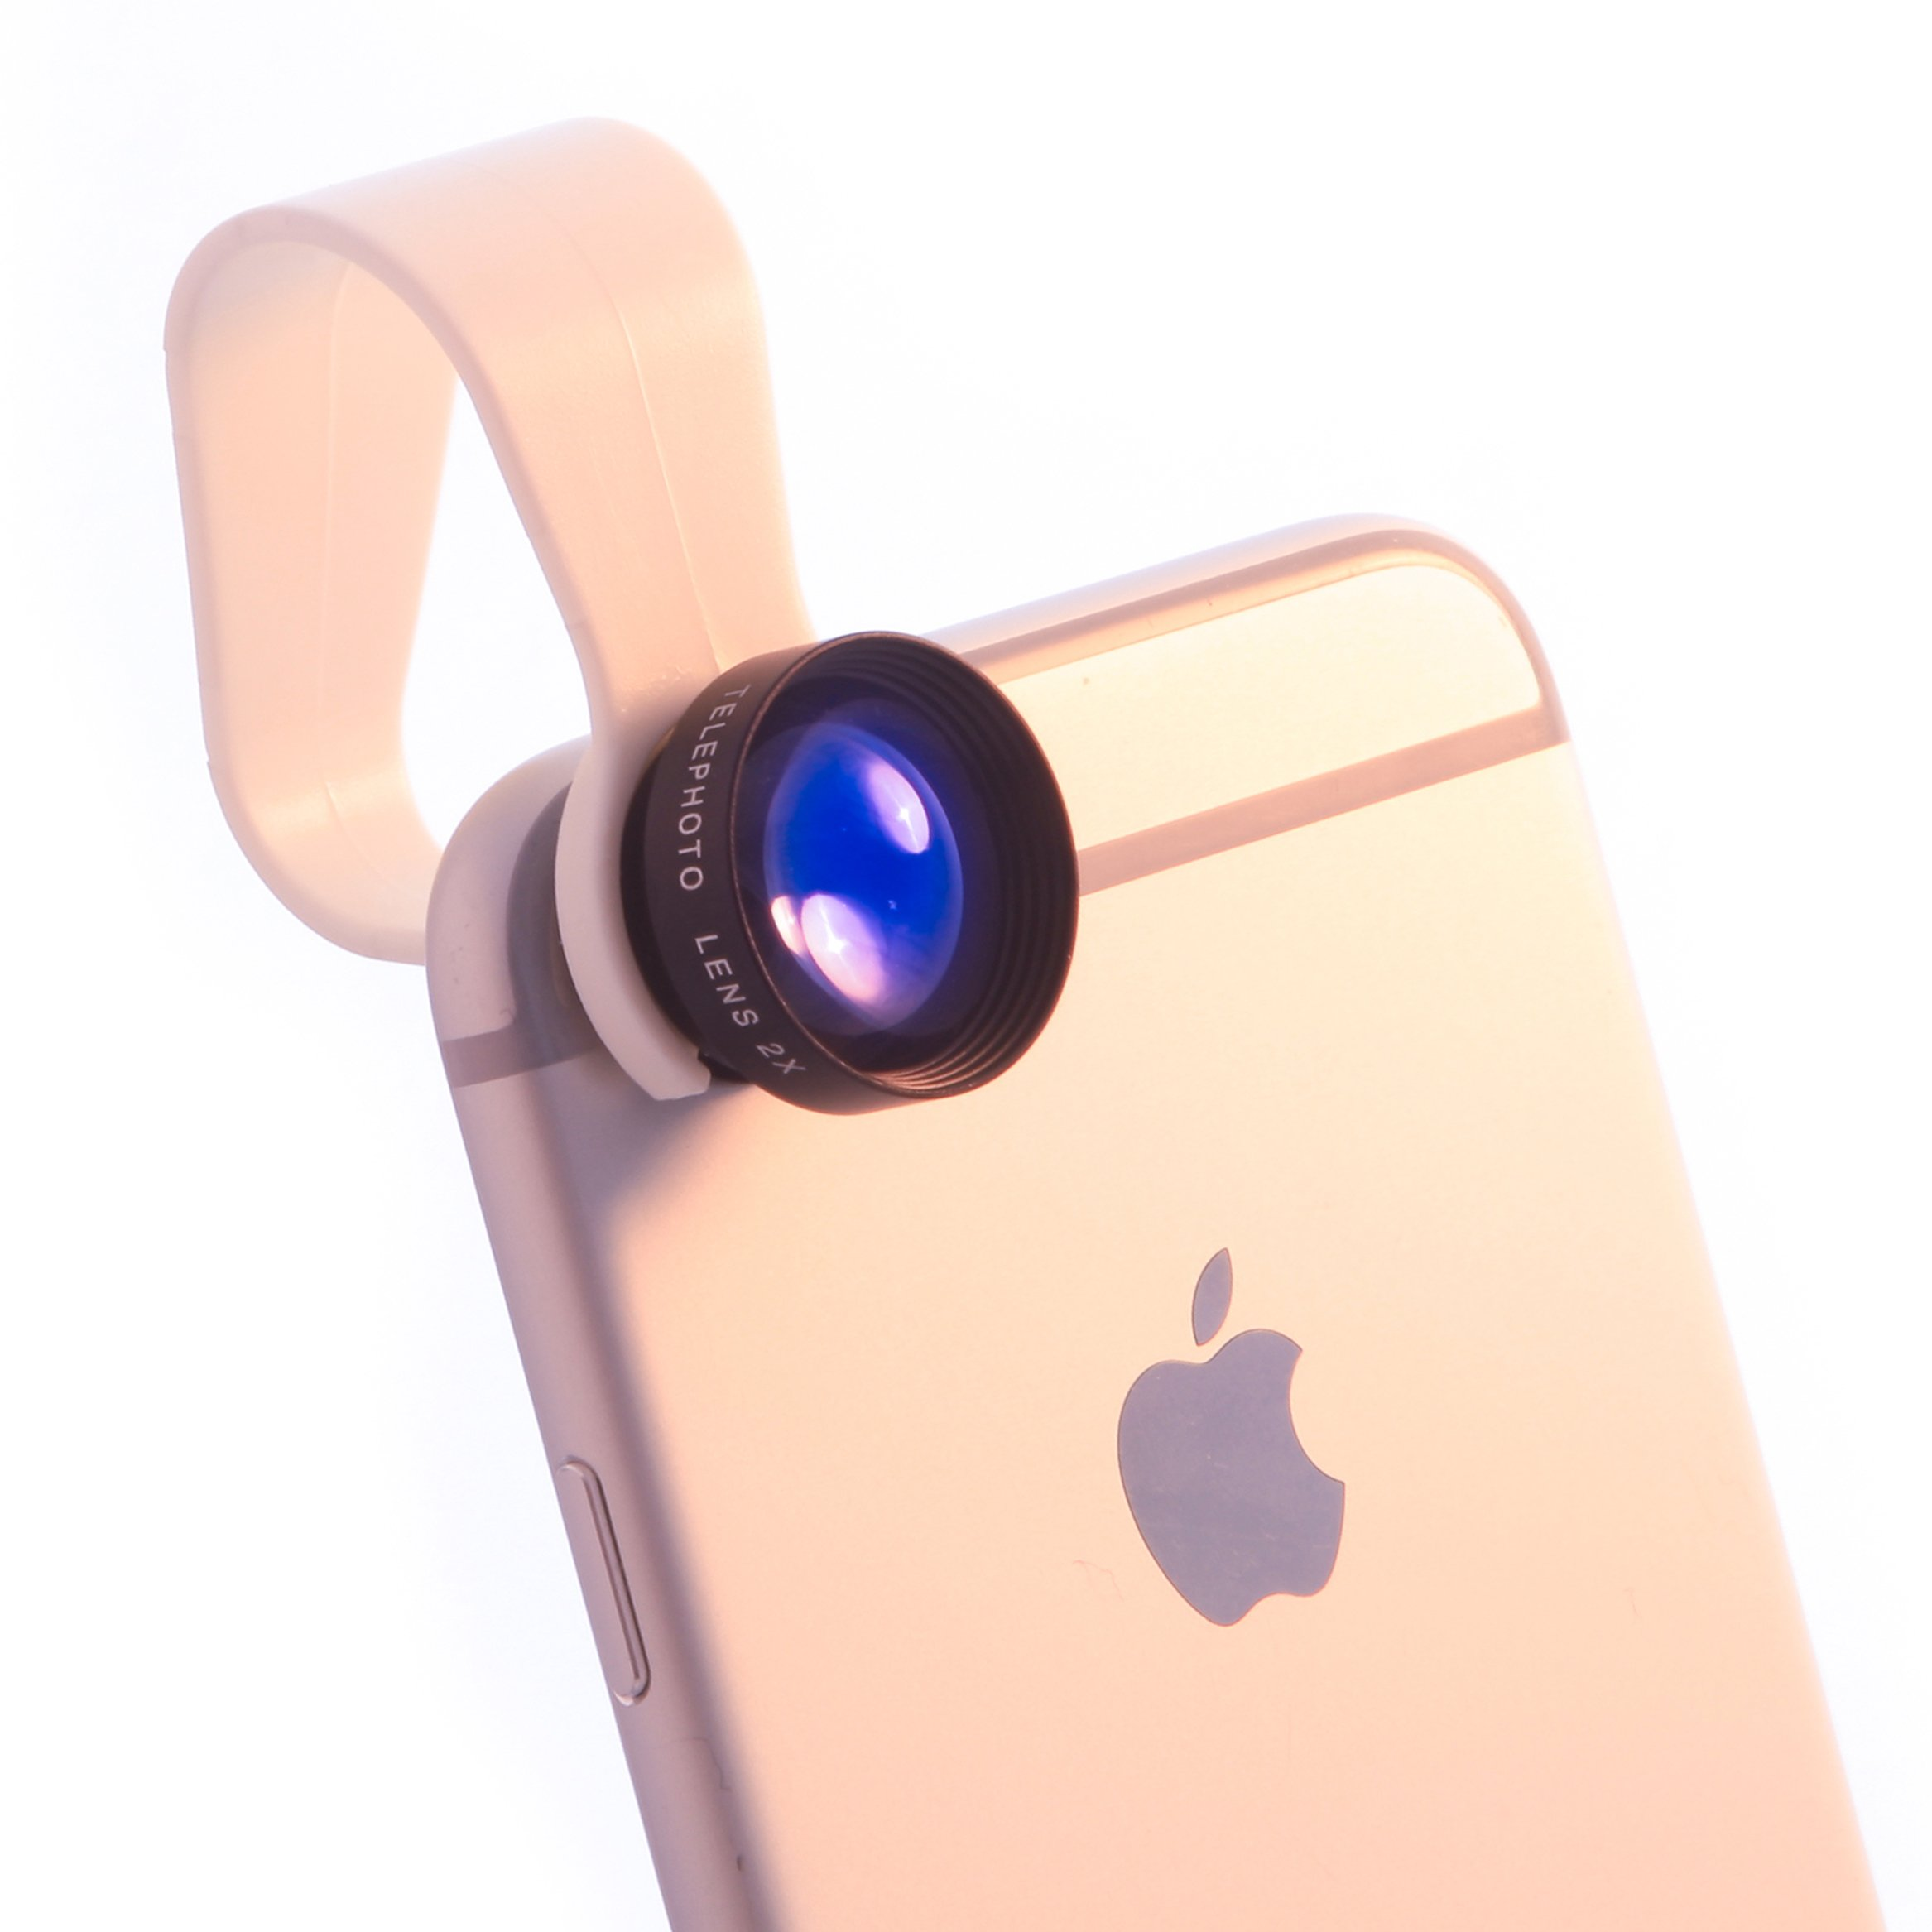 iPhone Lens 2x Zoom by Pocket Lens - Pro 60mm Telephoto Lens - 2X More Vision - Optic Lens Works With Iphone 6/5/5S/4/Ipad/Samsung/Android and more - Comes with bag